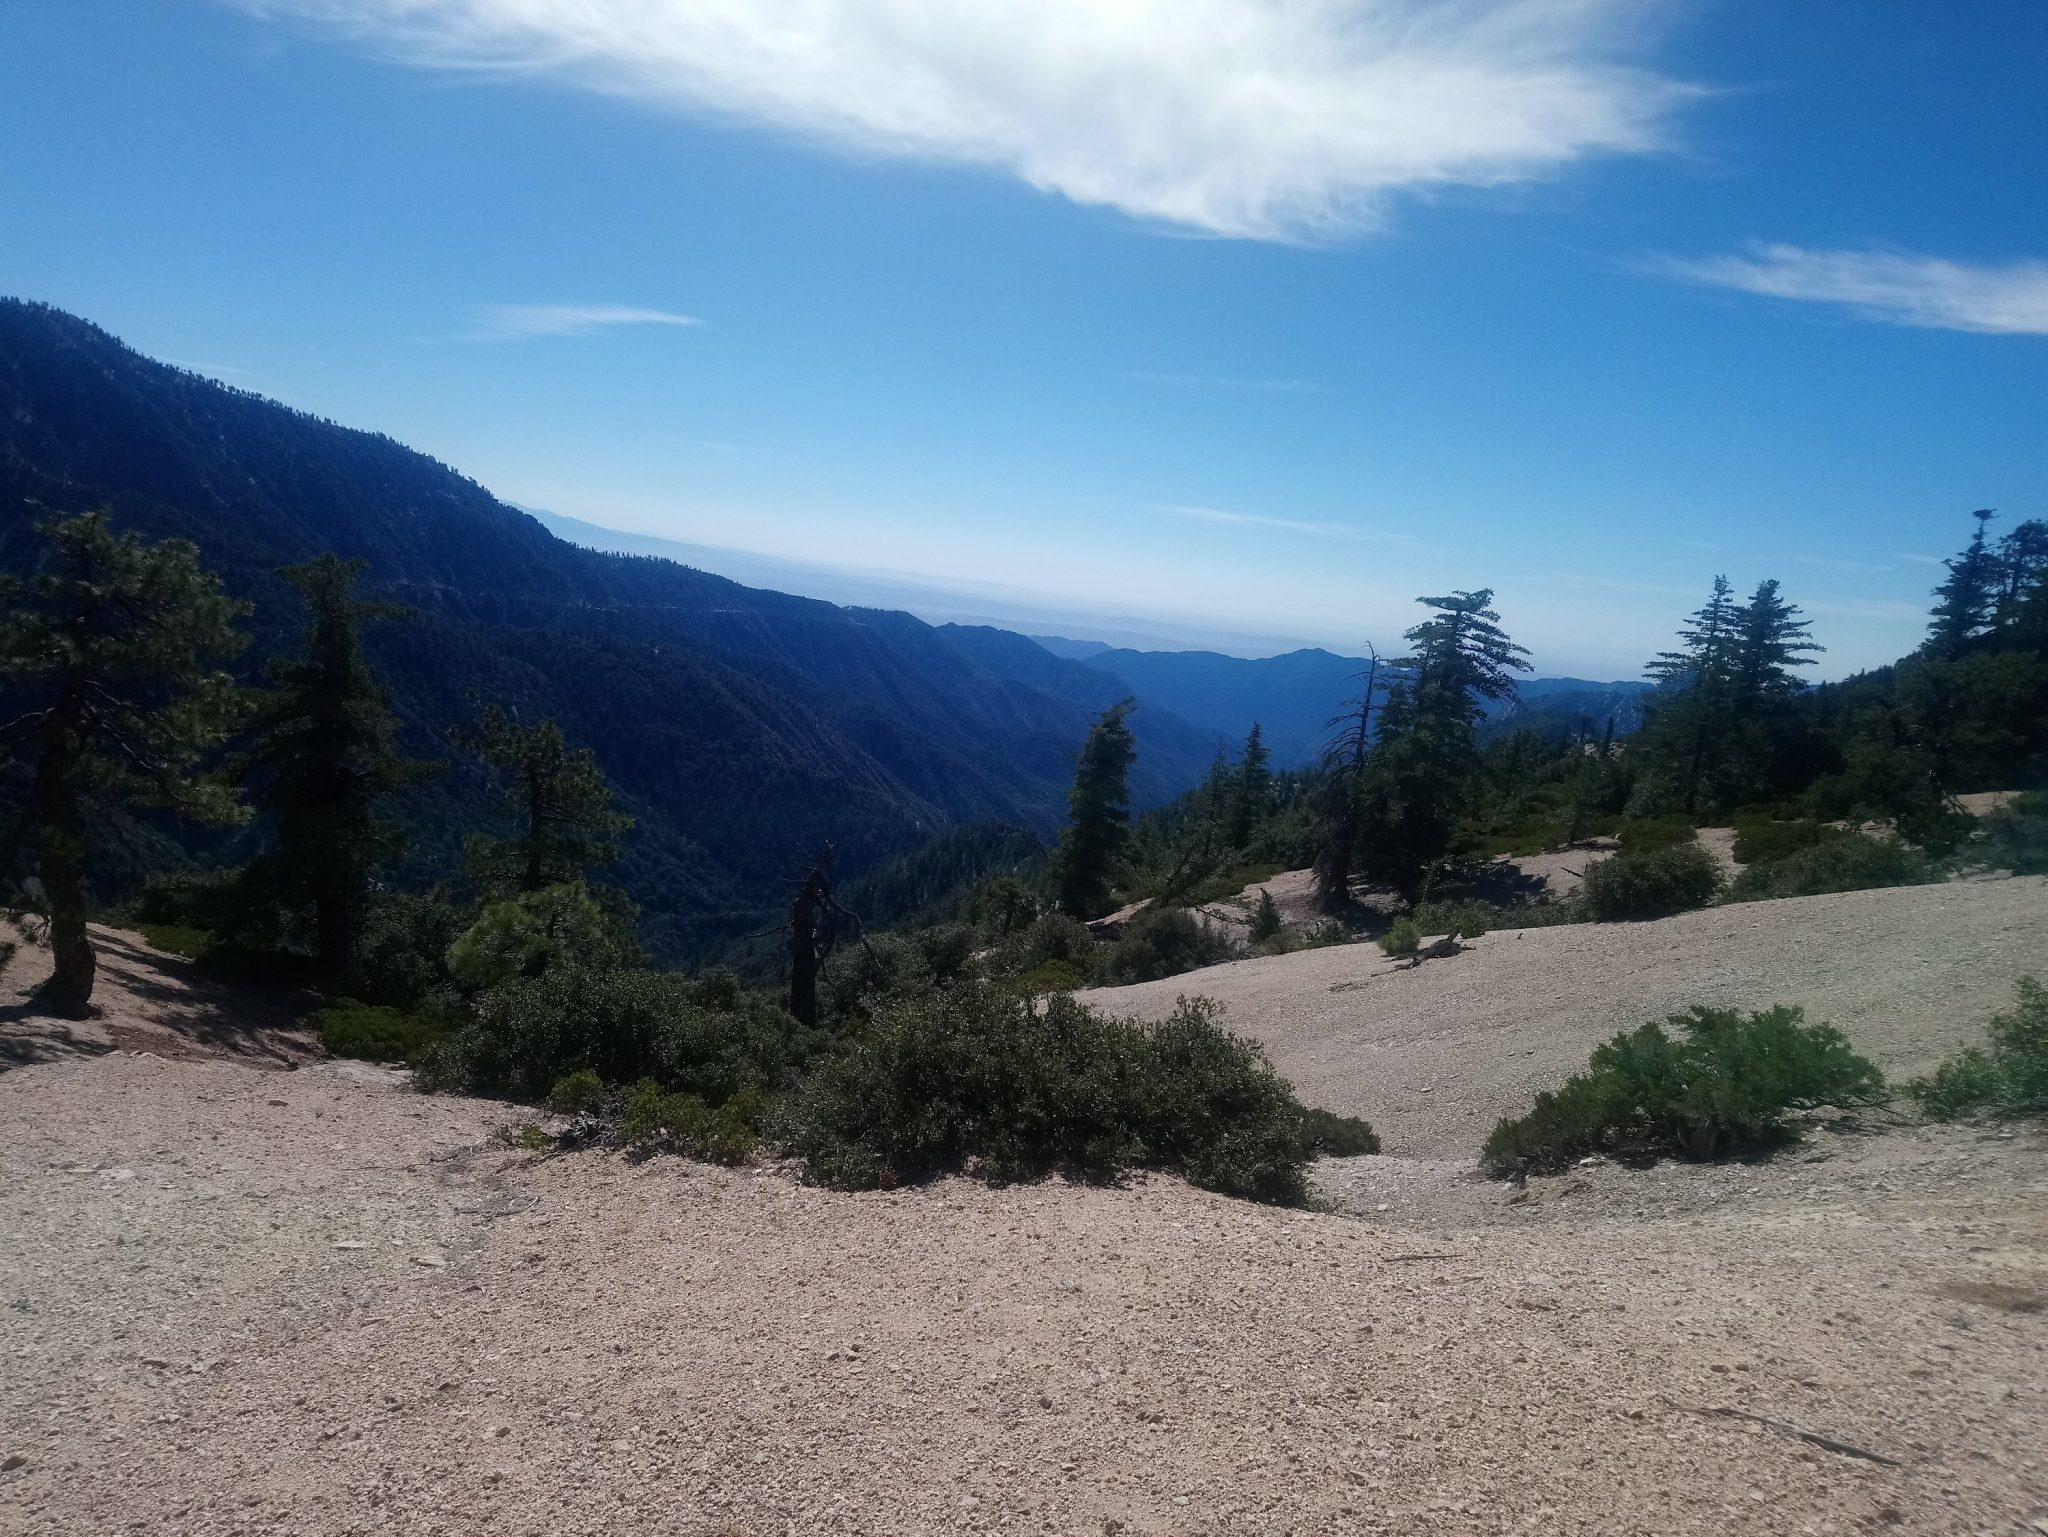 Another Breezy Pacific Crest Trail View